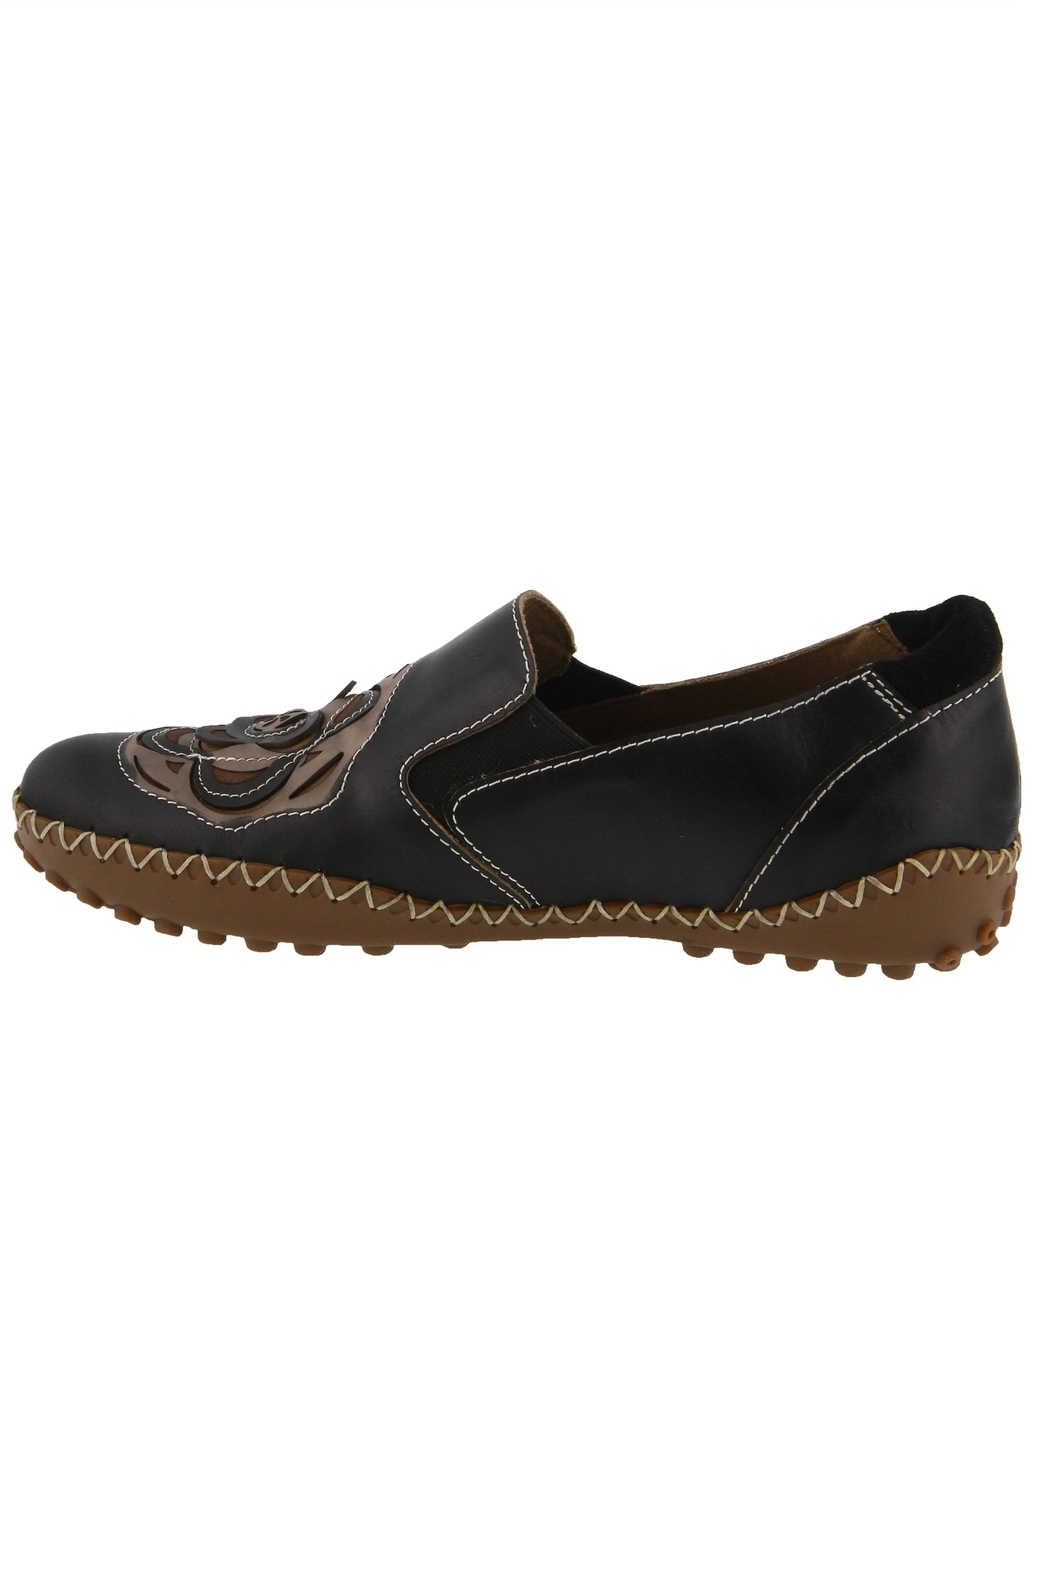 L'Artiste Super Grip Slip-On - Front Cropped Image